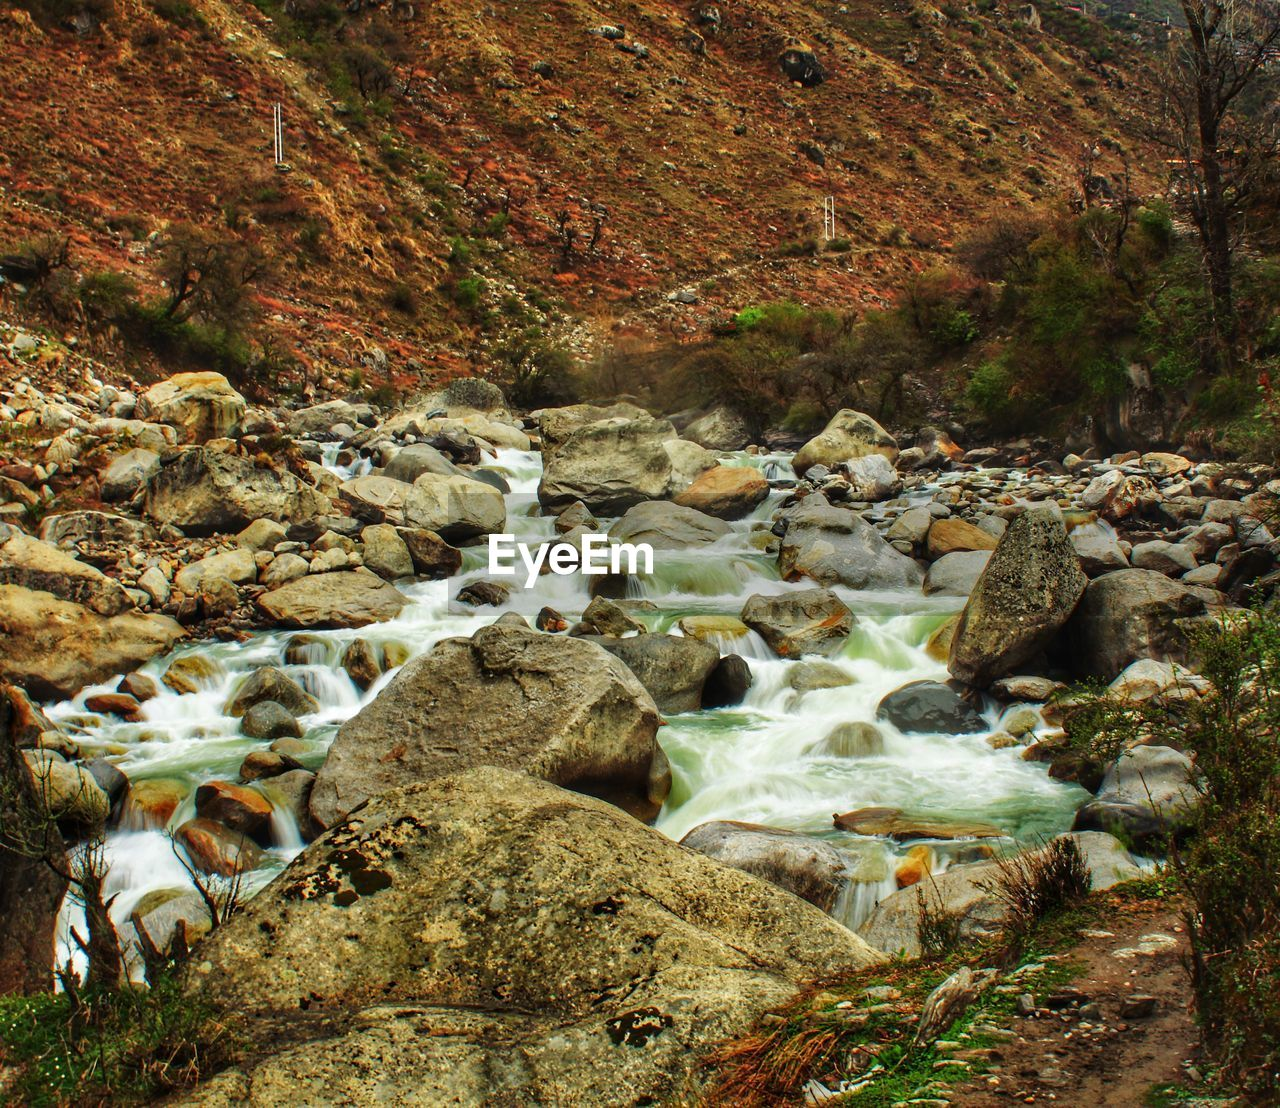 rock, rock - object, solid, water, scenics - nature, motion, nature, flowing water, beauty in nature, day, no people, blurred motion, land, long exposure, forest, tree, flowing, non-urban scene, river, stream - flowing water, outdoors, pebble